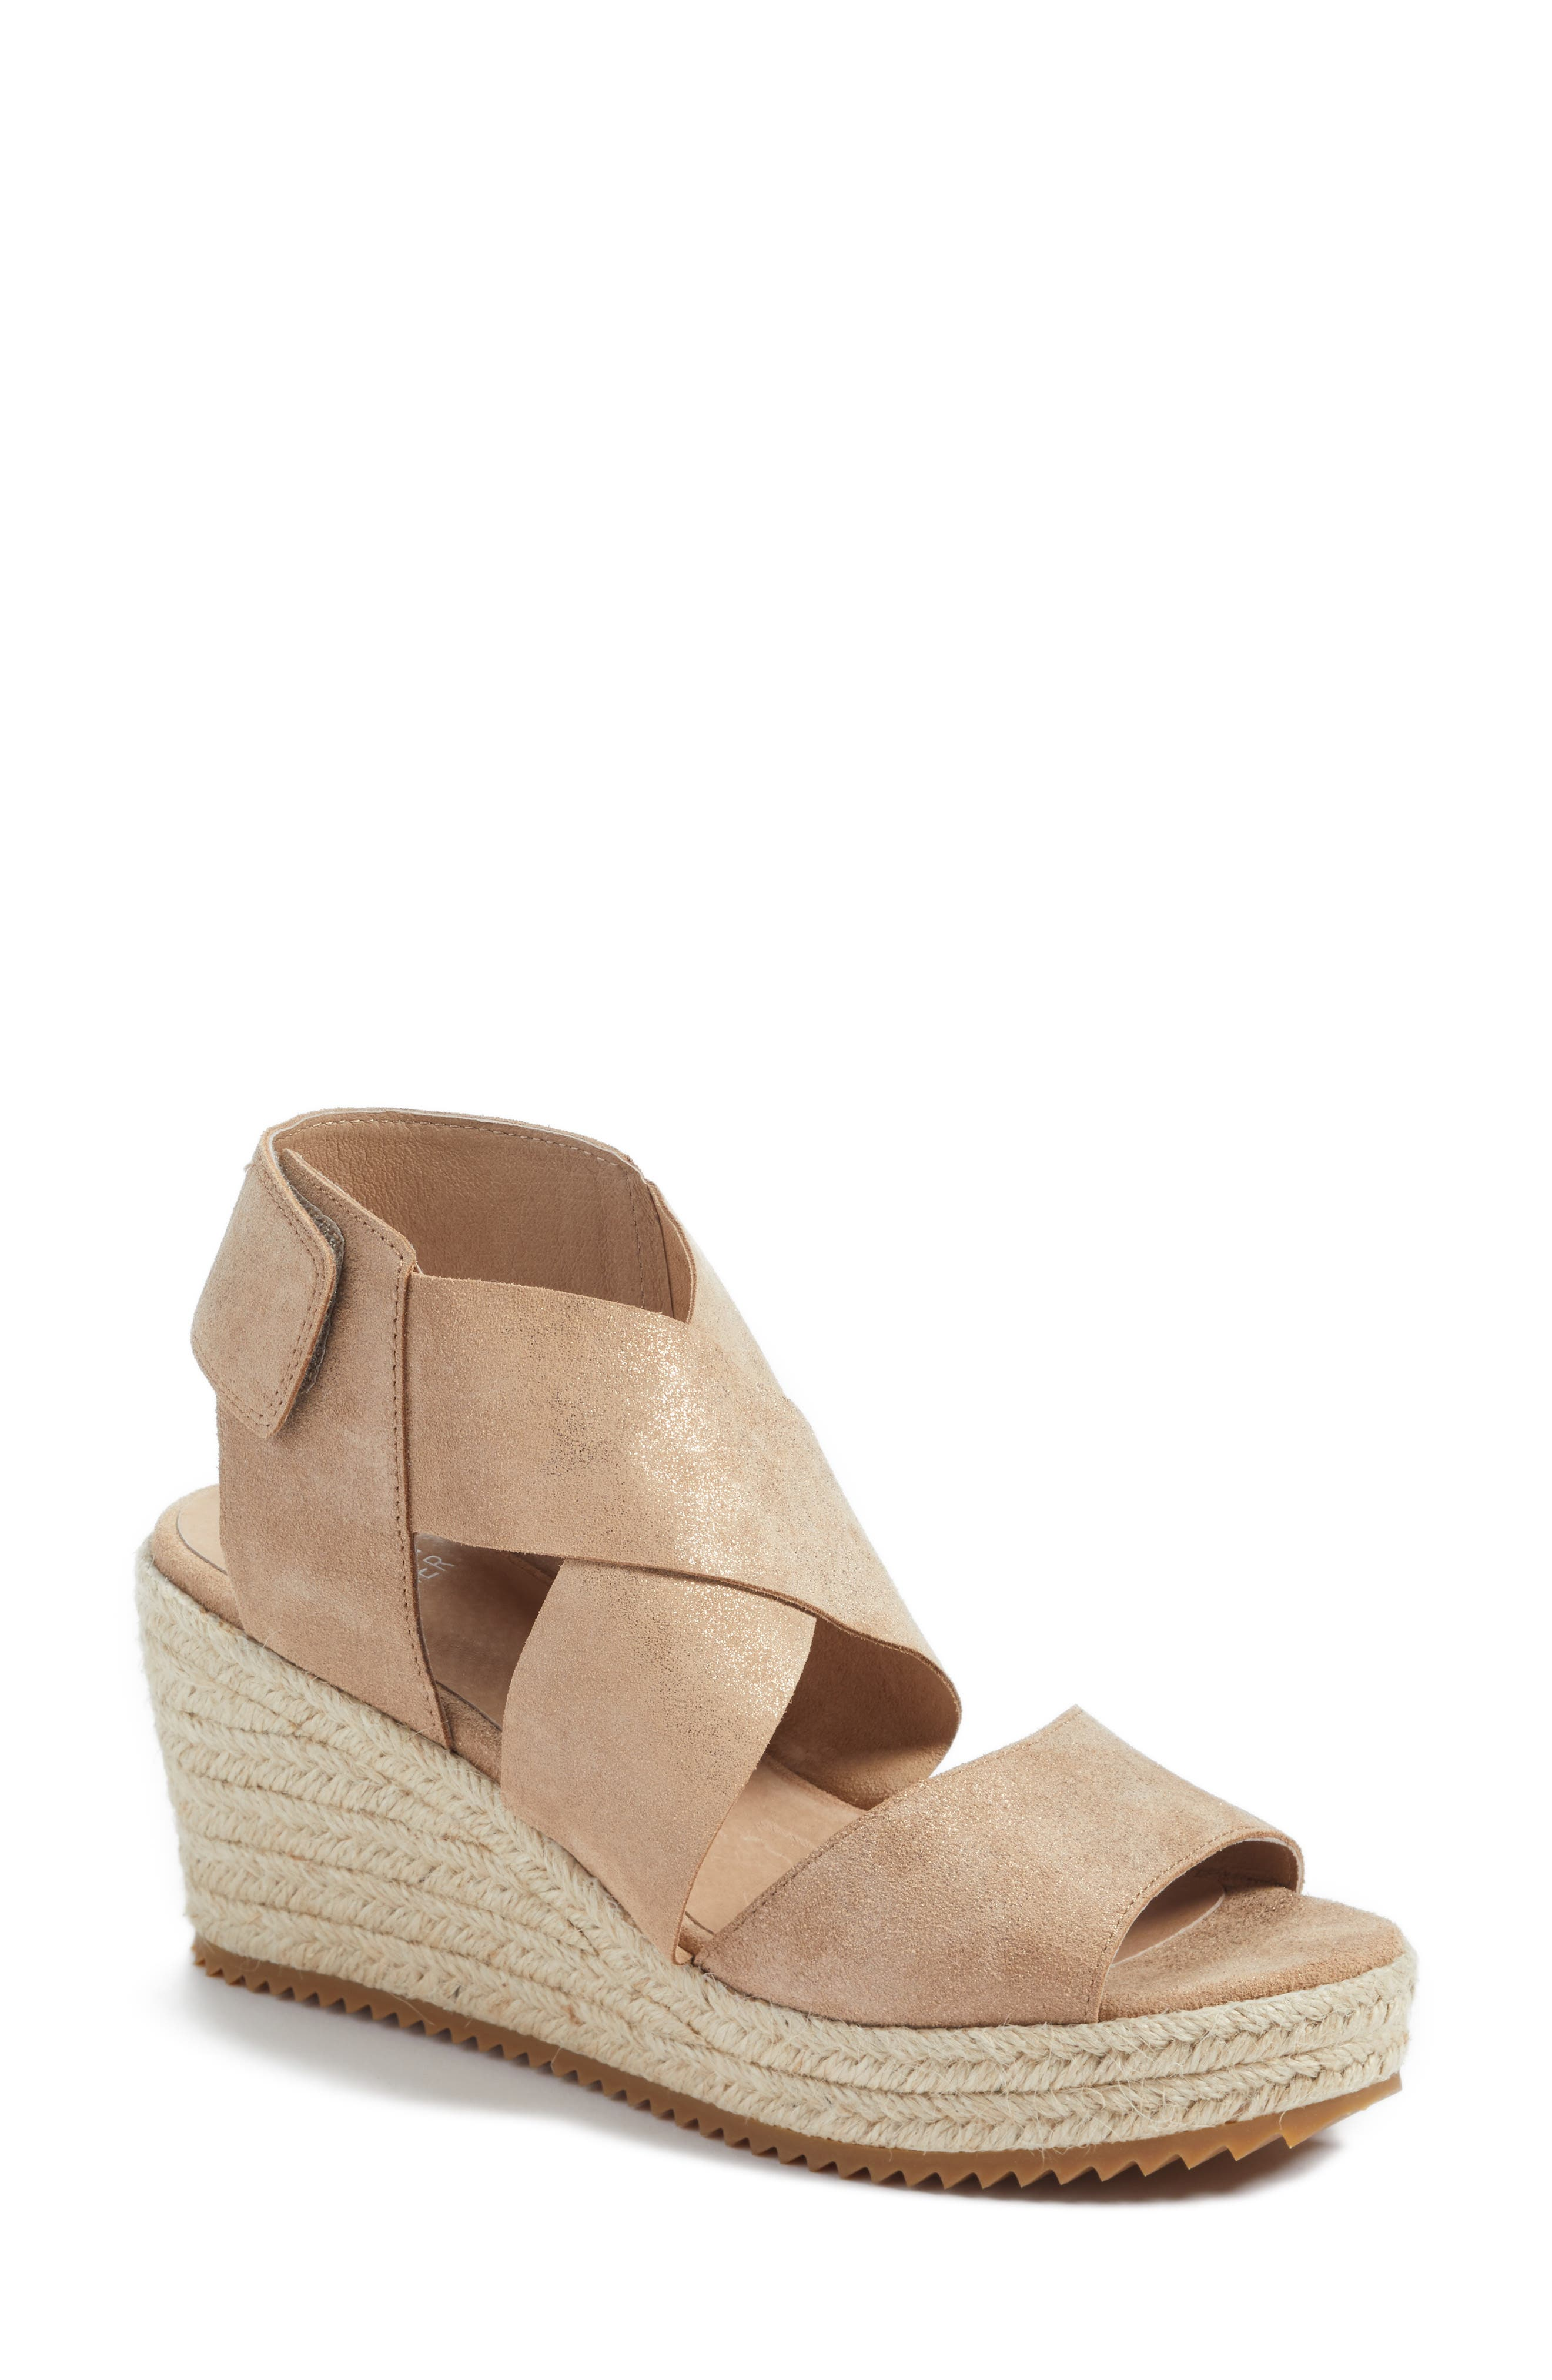 Alternate Image 1 Selected - Eileen Fisher 'Willow' Espadrille Wedge Sandal (Women)